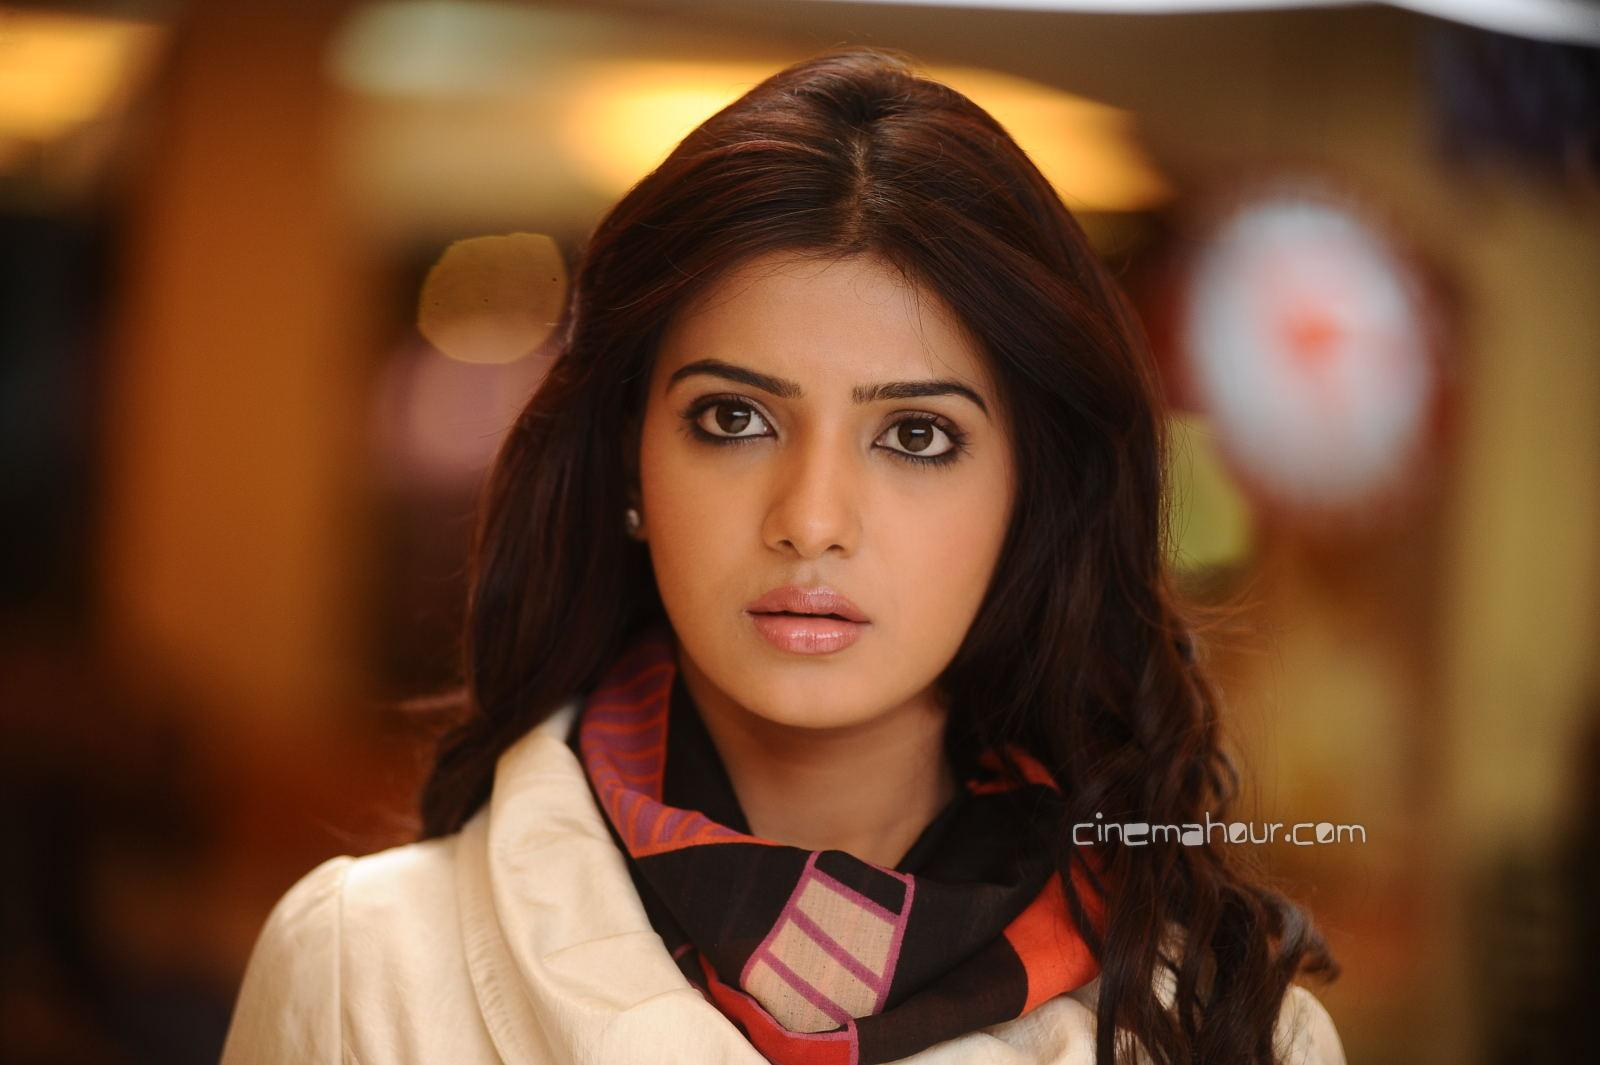 world entertainment: samantha ruth prabhu wallpaper